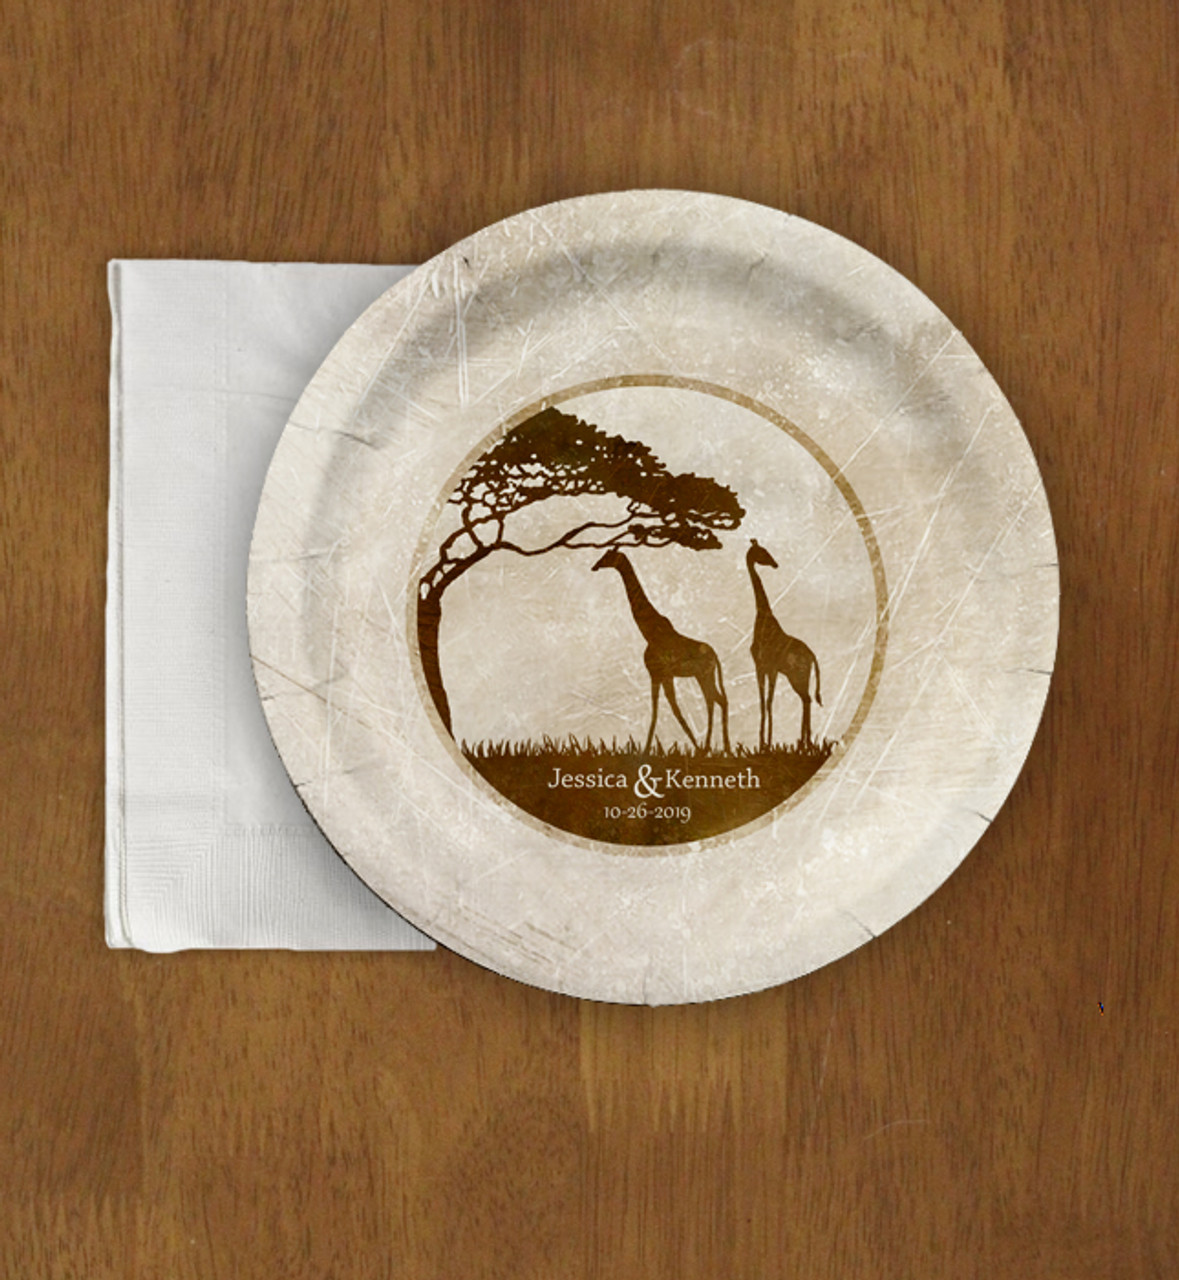 Zoo Wedding African Giraffes Themed Paper Party Plates (8 pk) : paper wedding plates - pezcame.com